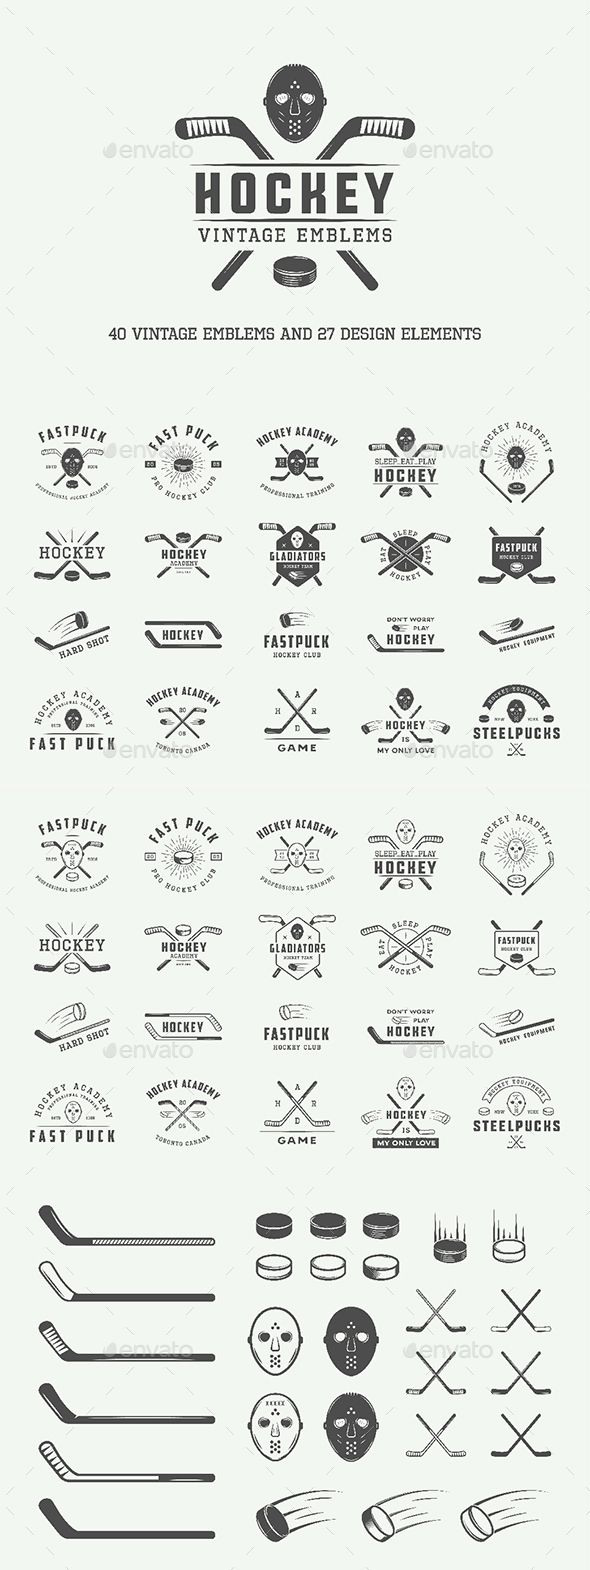 Vintage Hockey Emblems Template PSD, Vector EPS, AI Illustrator